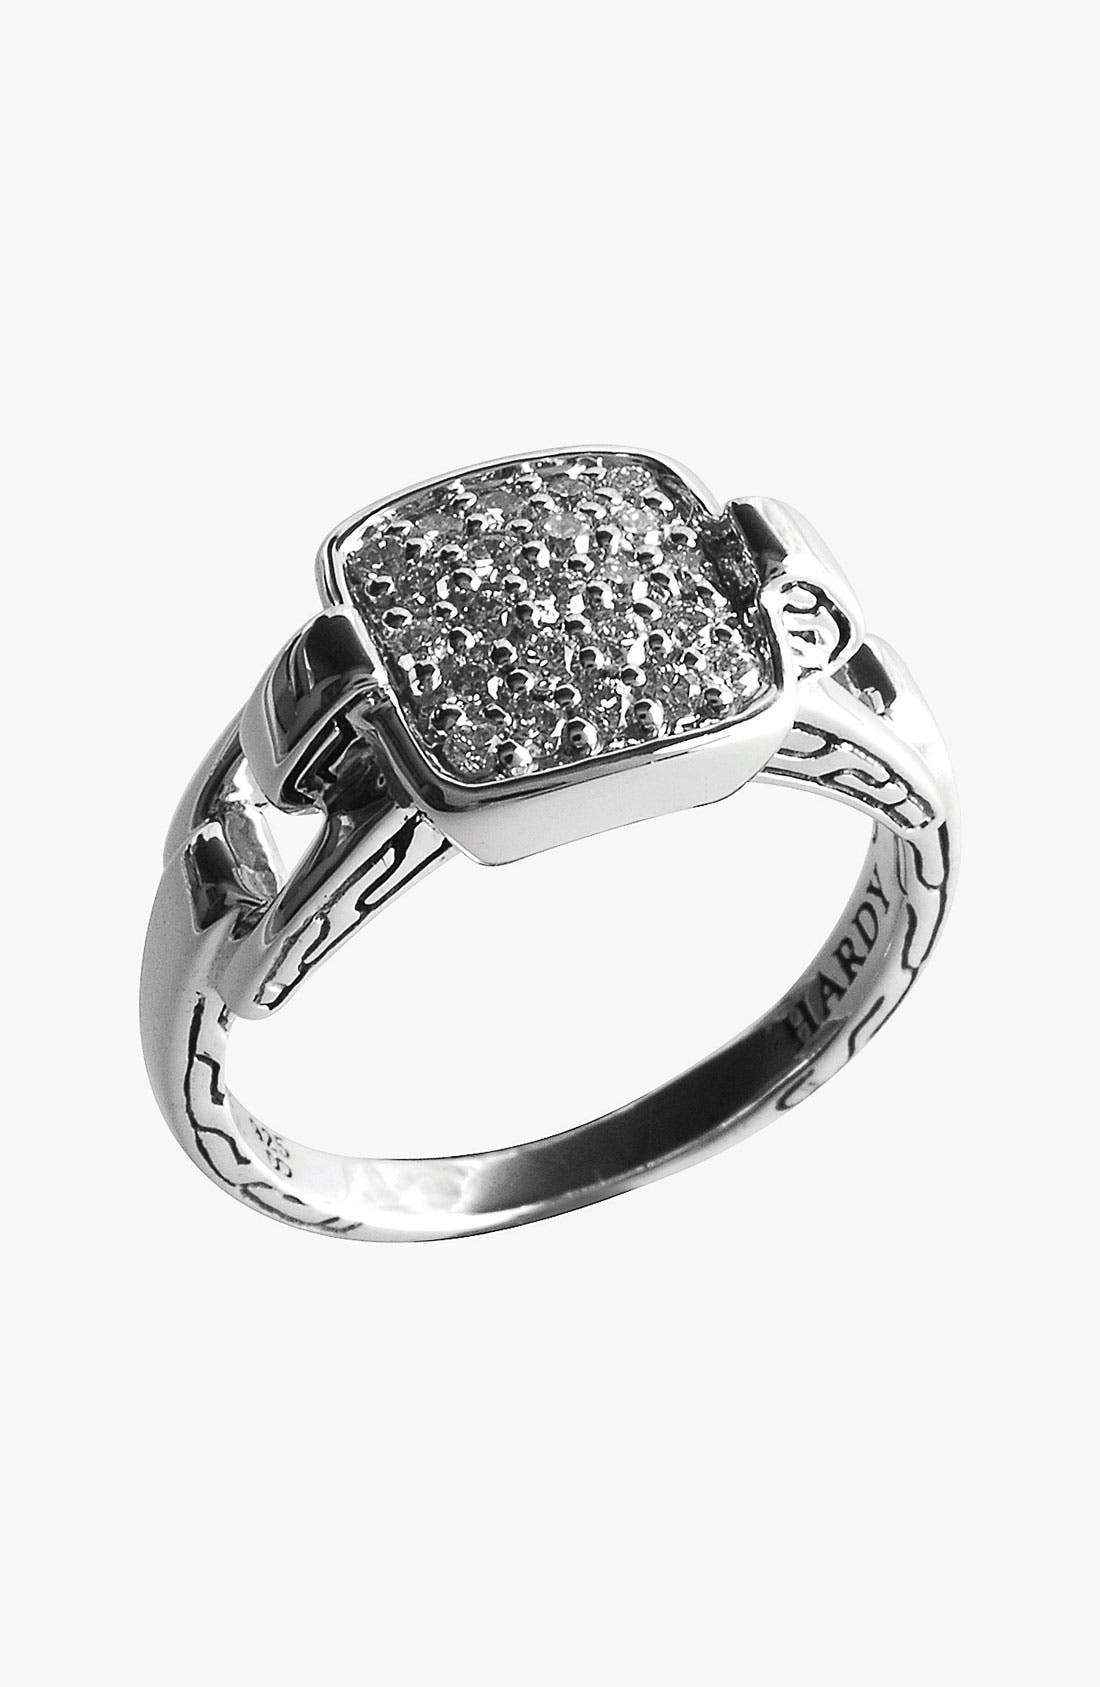 Main Image - John Hardy 'Classic Chain' Rectangular Diamond Ring